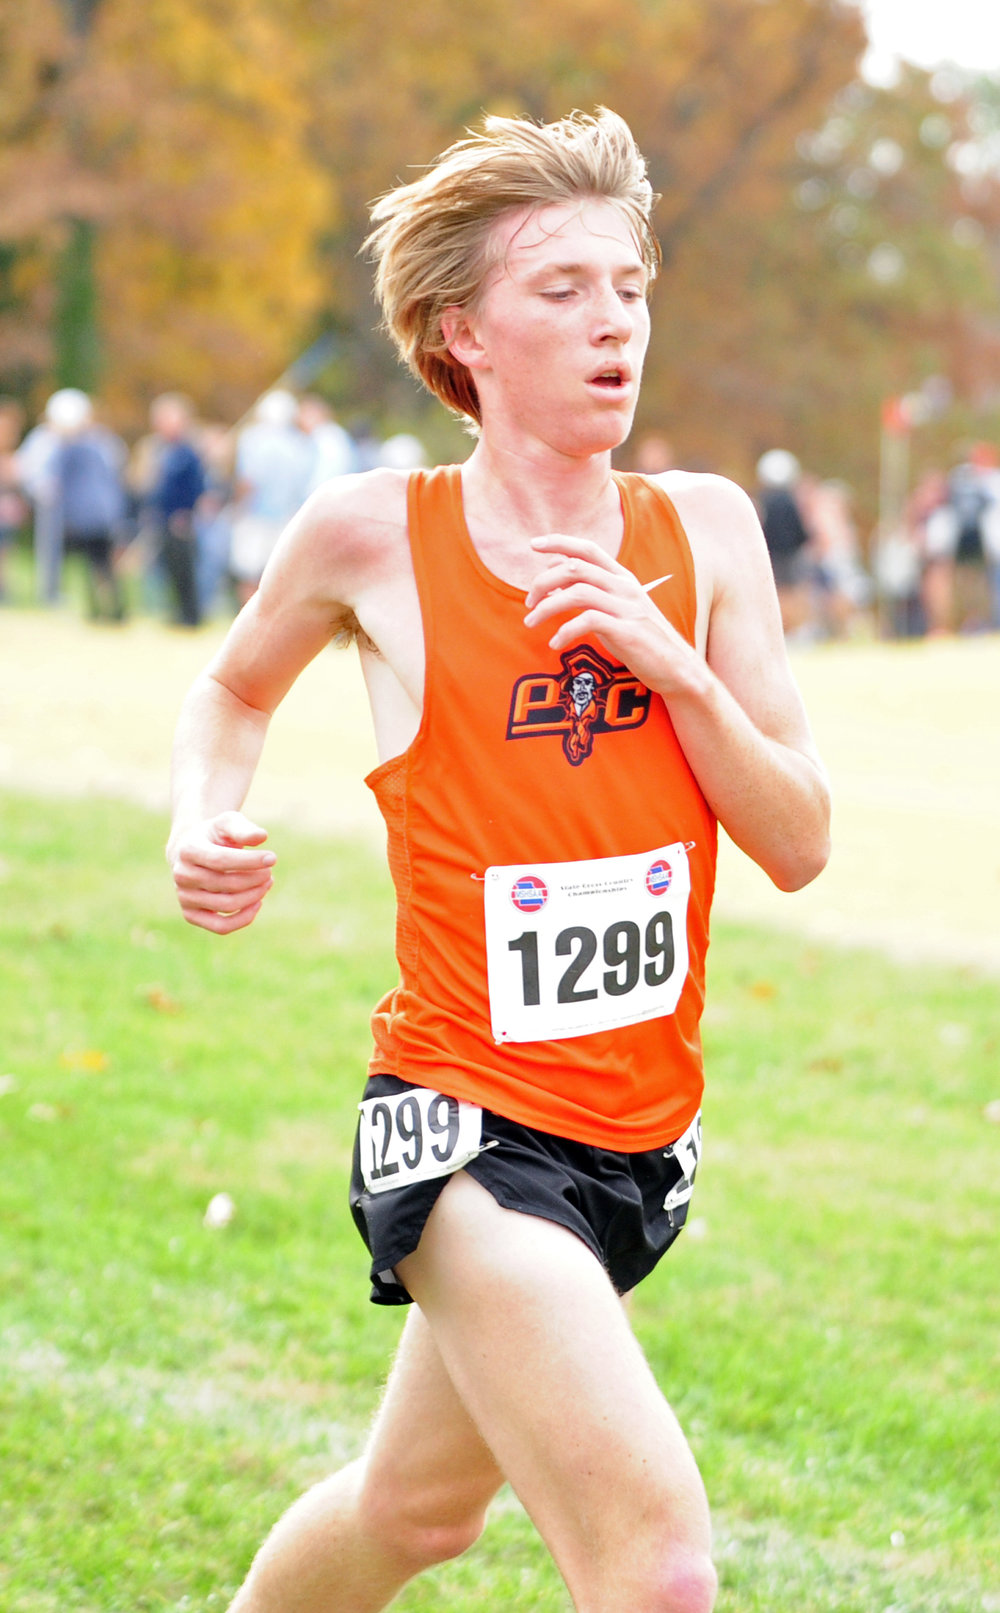 NICK INGRAM/Citizen photo Platte County junior Jackson Letcher runs in the Class 4 Missouri State Cross Country Championships on Saturday, Nov. 4 at Oak Hills Golf Center in Jefferson City, Mo.